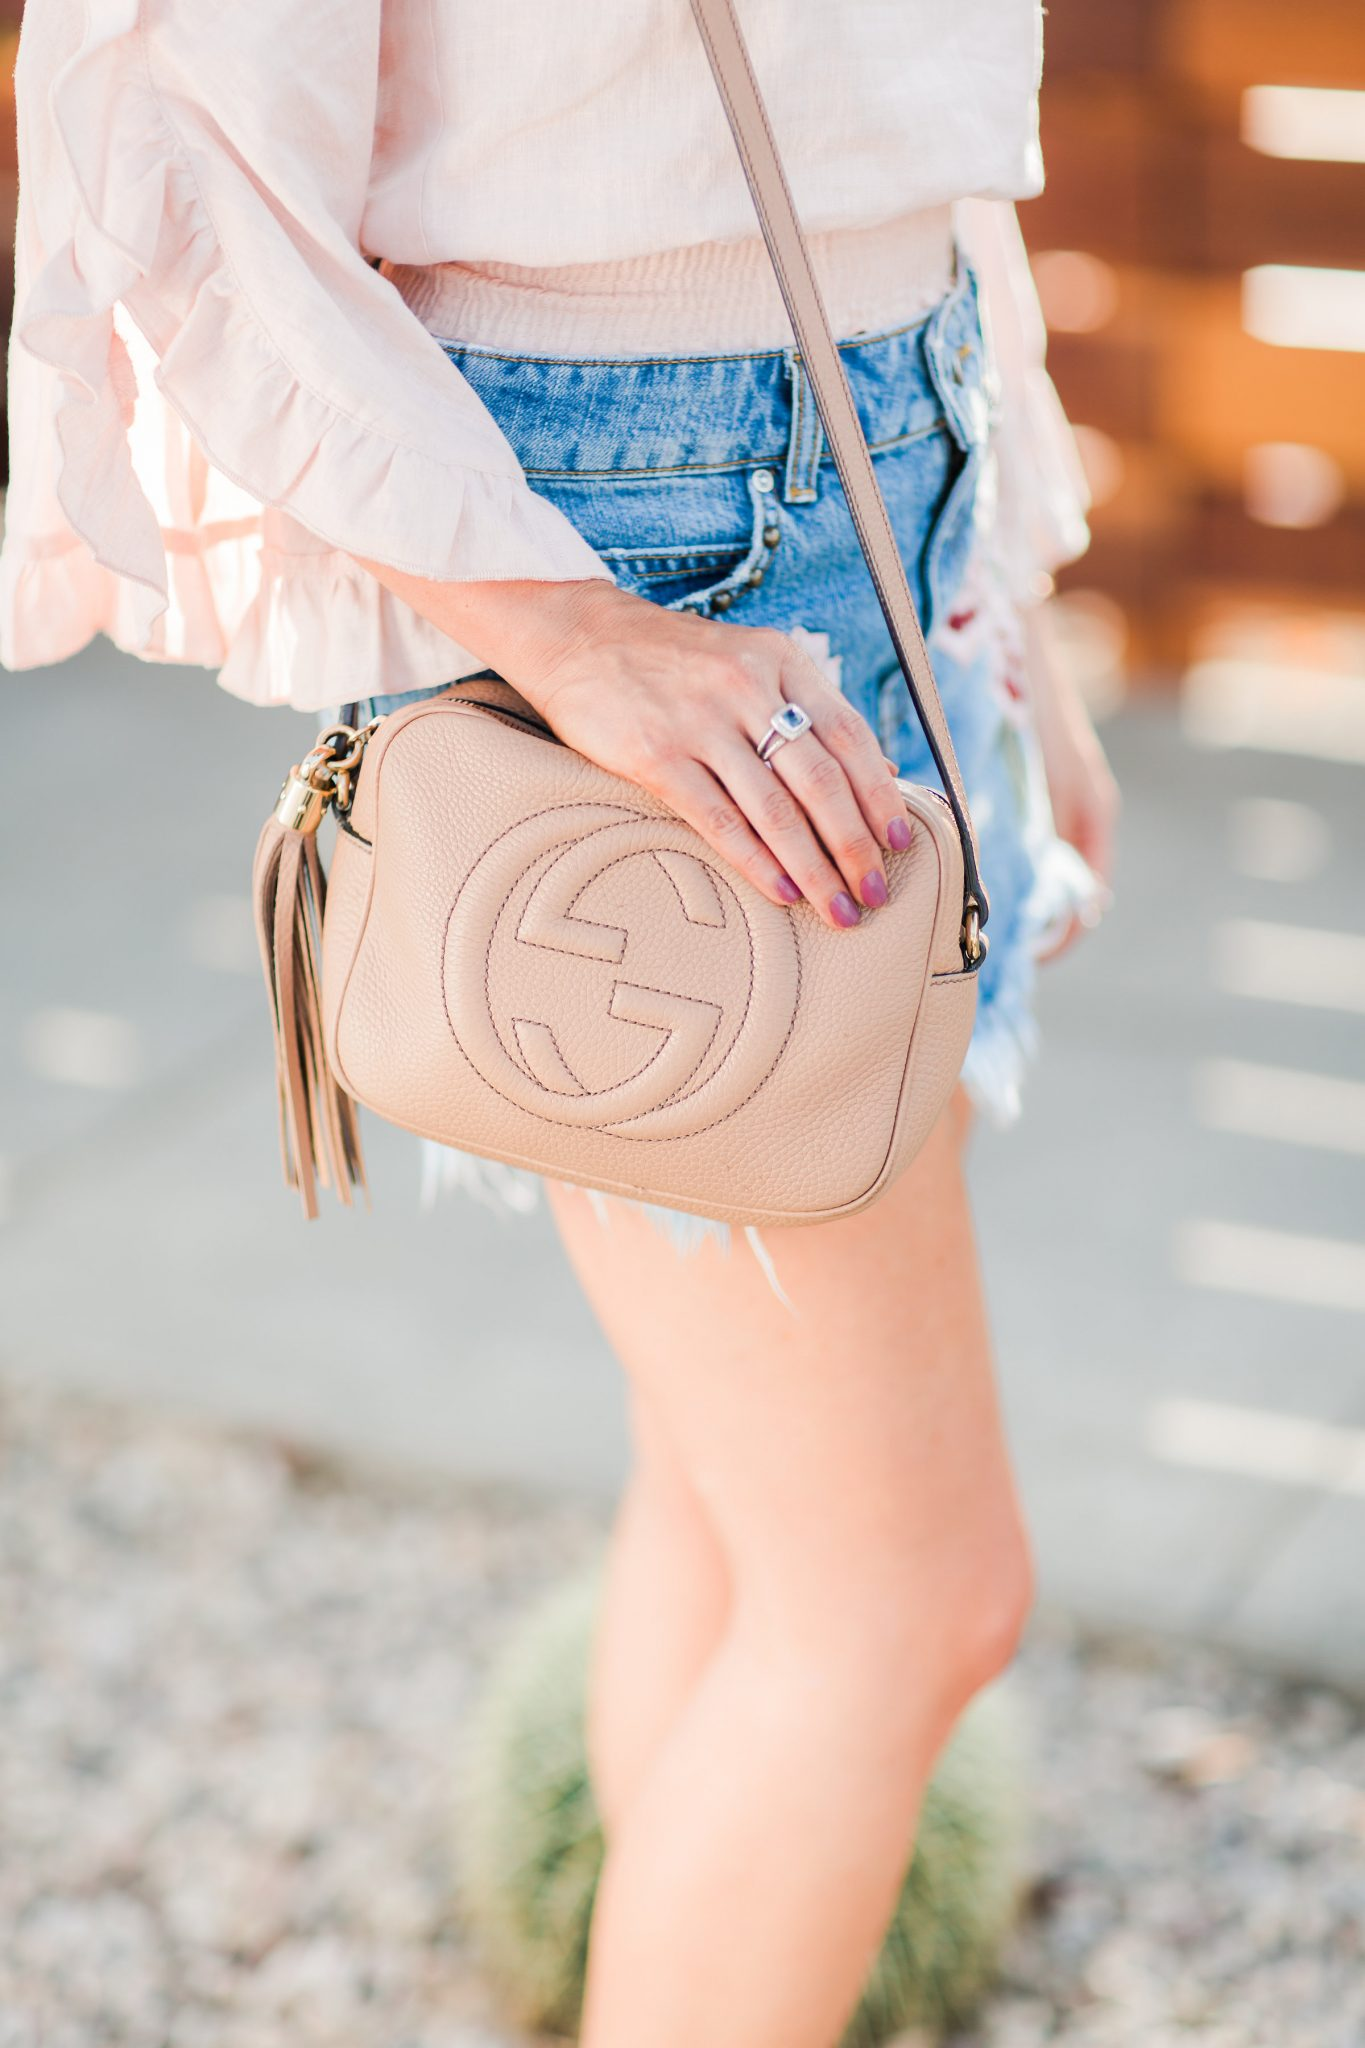 Maxie Elle | Gucci Soho Disco Bag - Embroidered Denim featured by popular Orange County fashion blogger, Maxie Elle